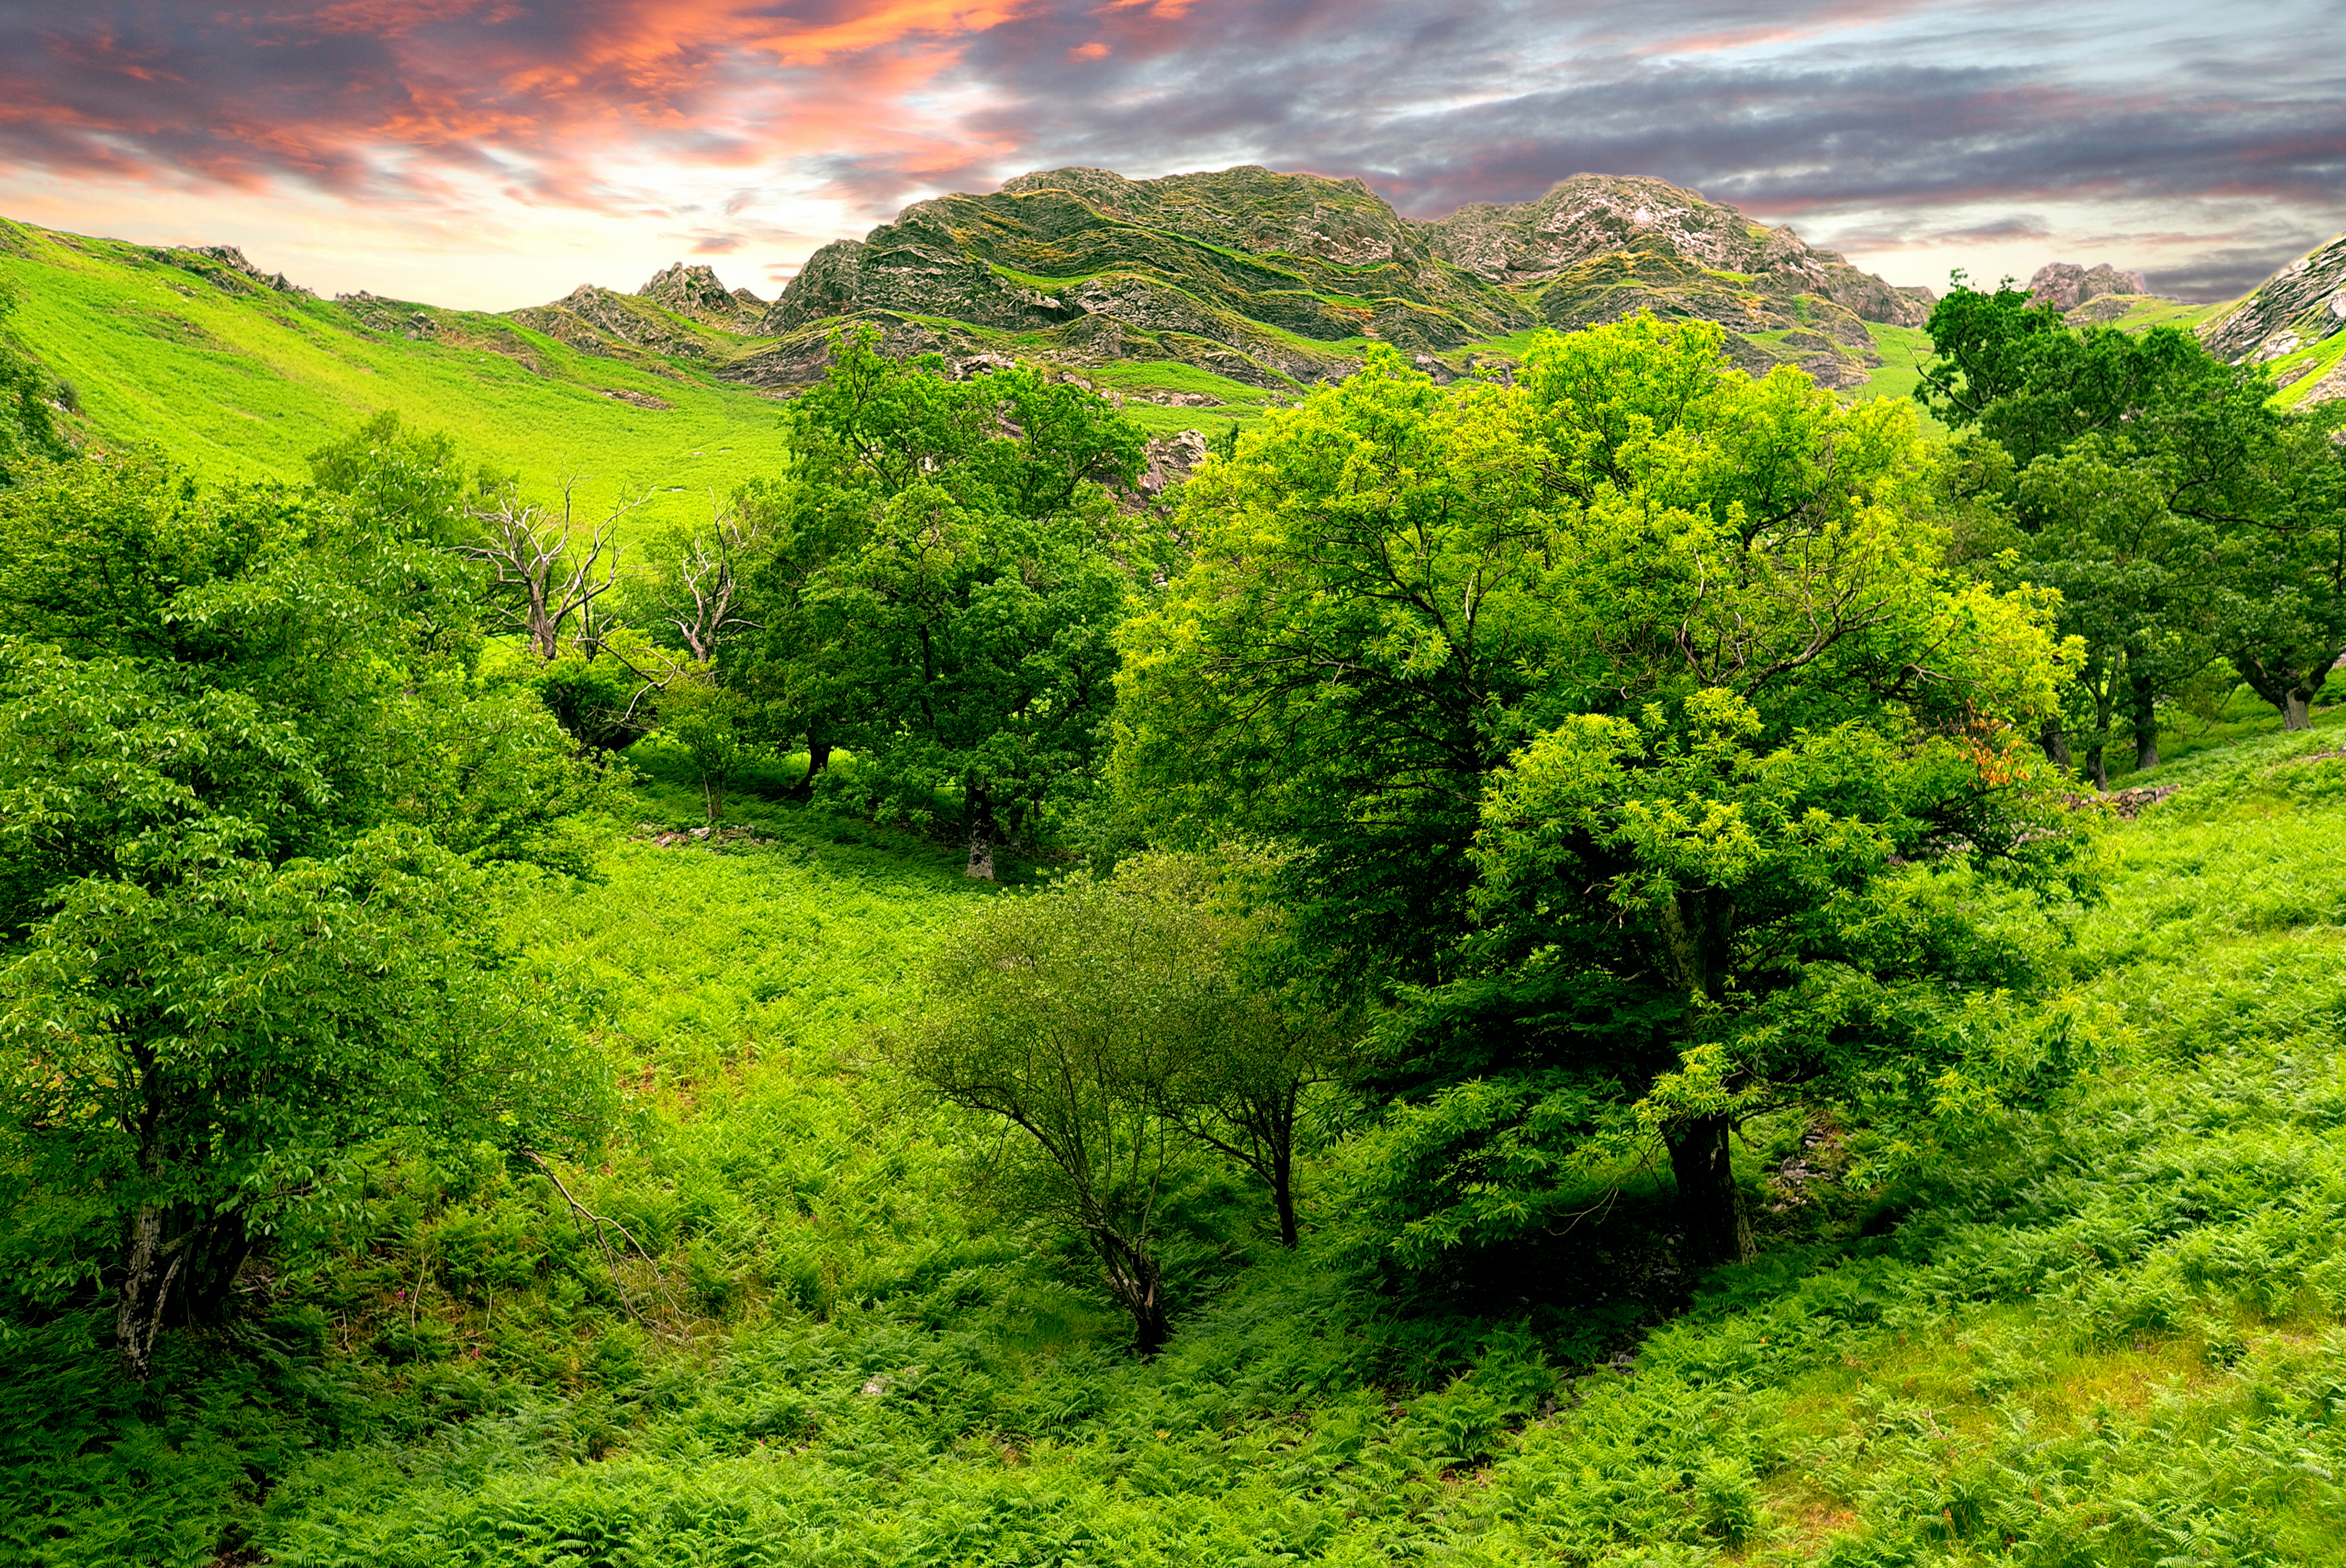 Green Landscape Wallpapers - 4272X2856 - 15145649 | Chainimage